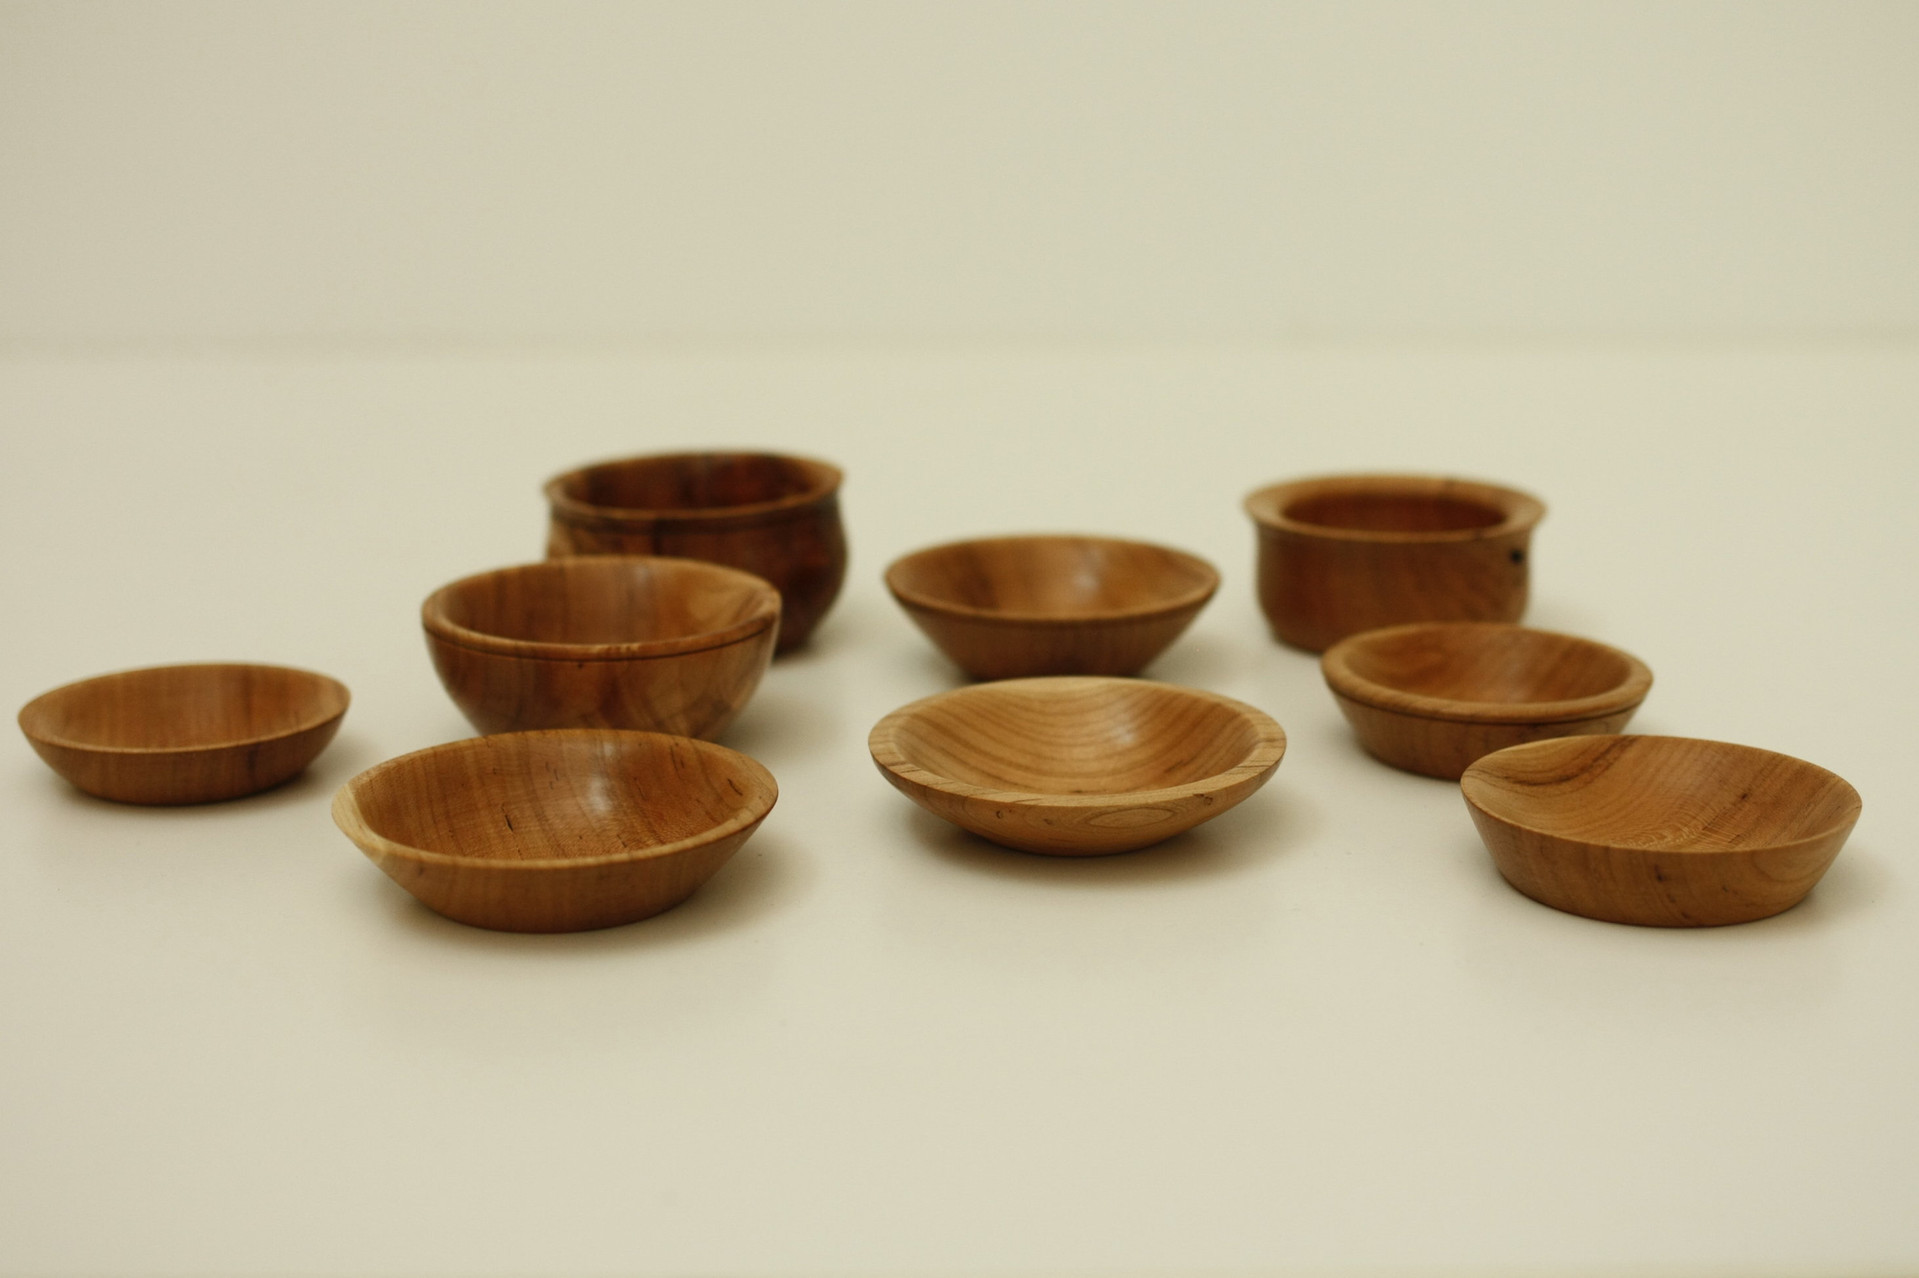 Small cherry bowls